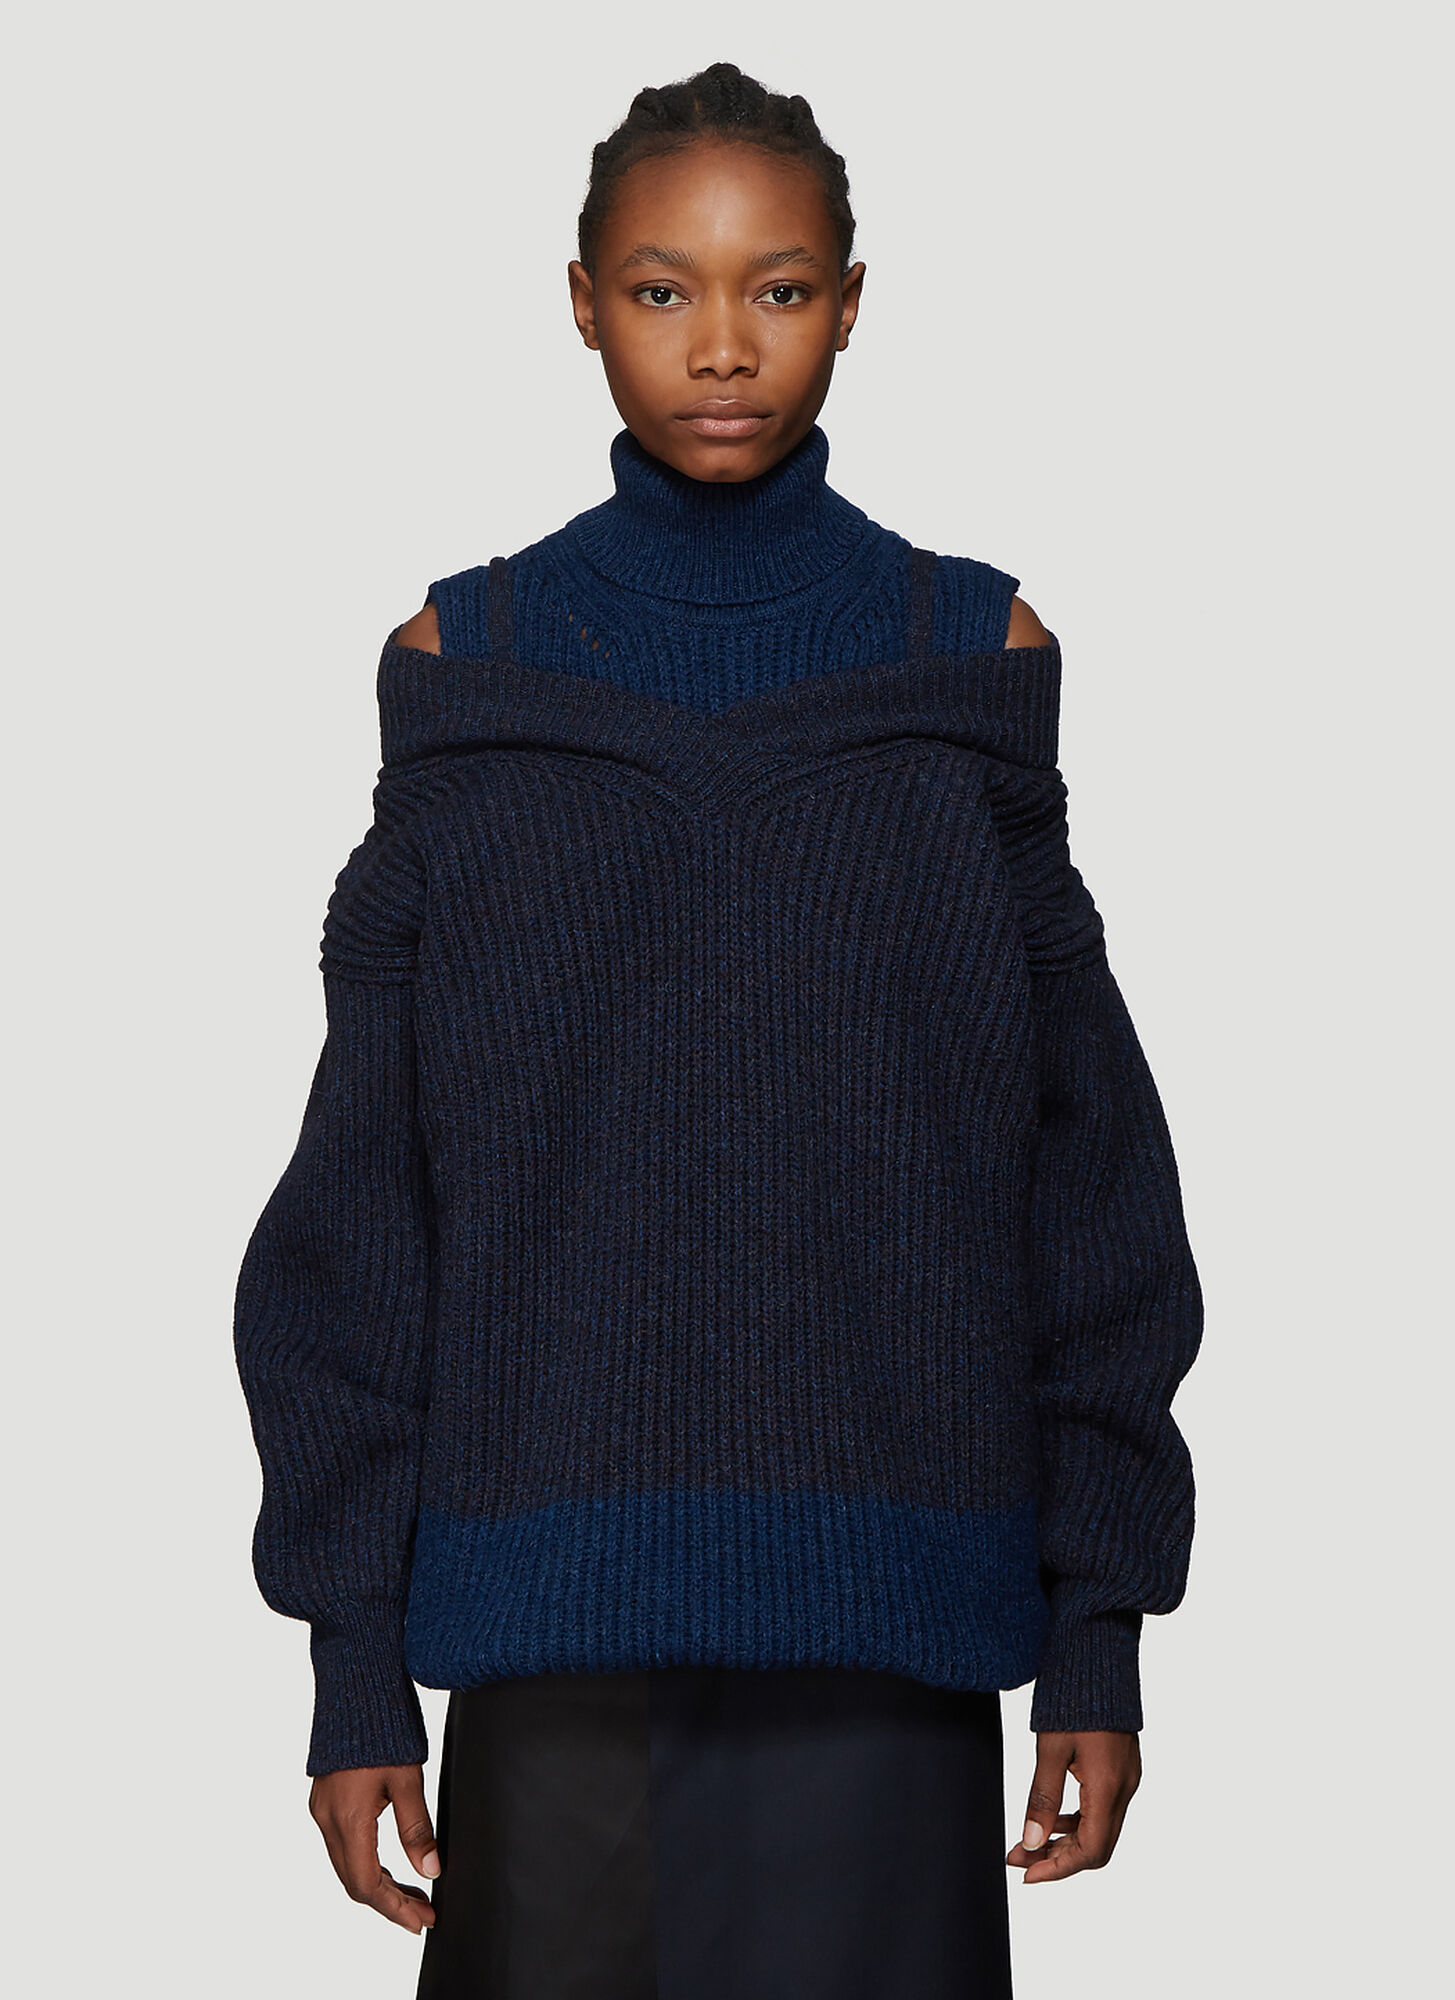 Maison Margiela Double Layer Turtleneck Sweater in Blue